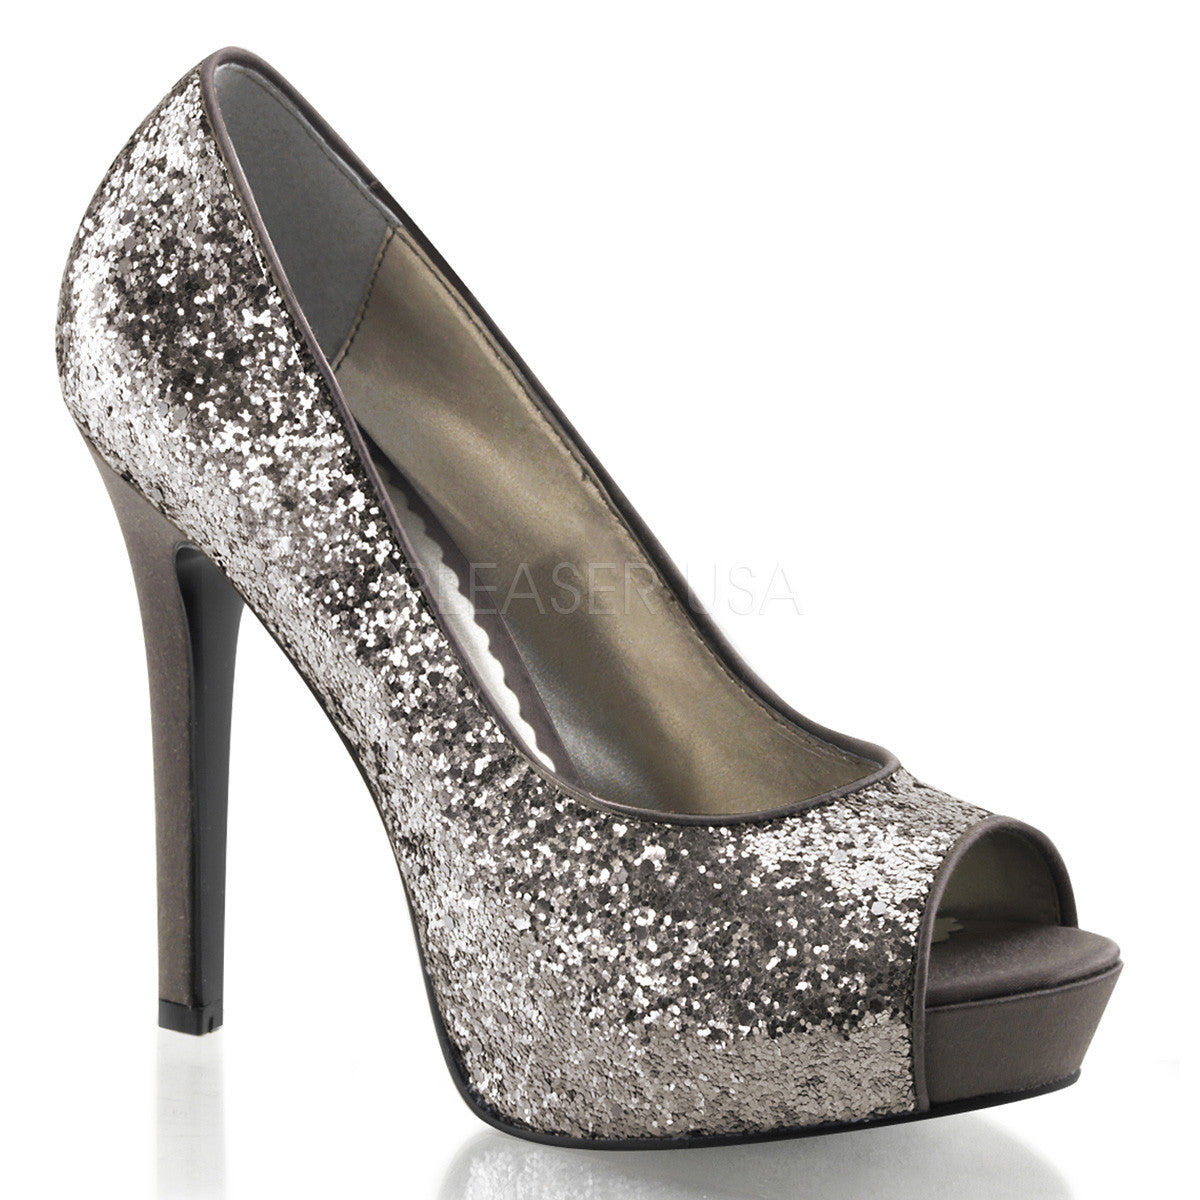 FABULICIOUS LUMINA-27G Charcoal Glitter Open Toe Pumps - Shoecup.com